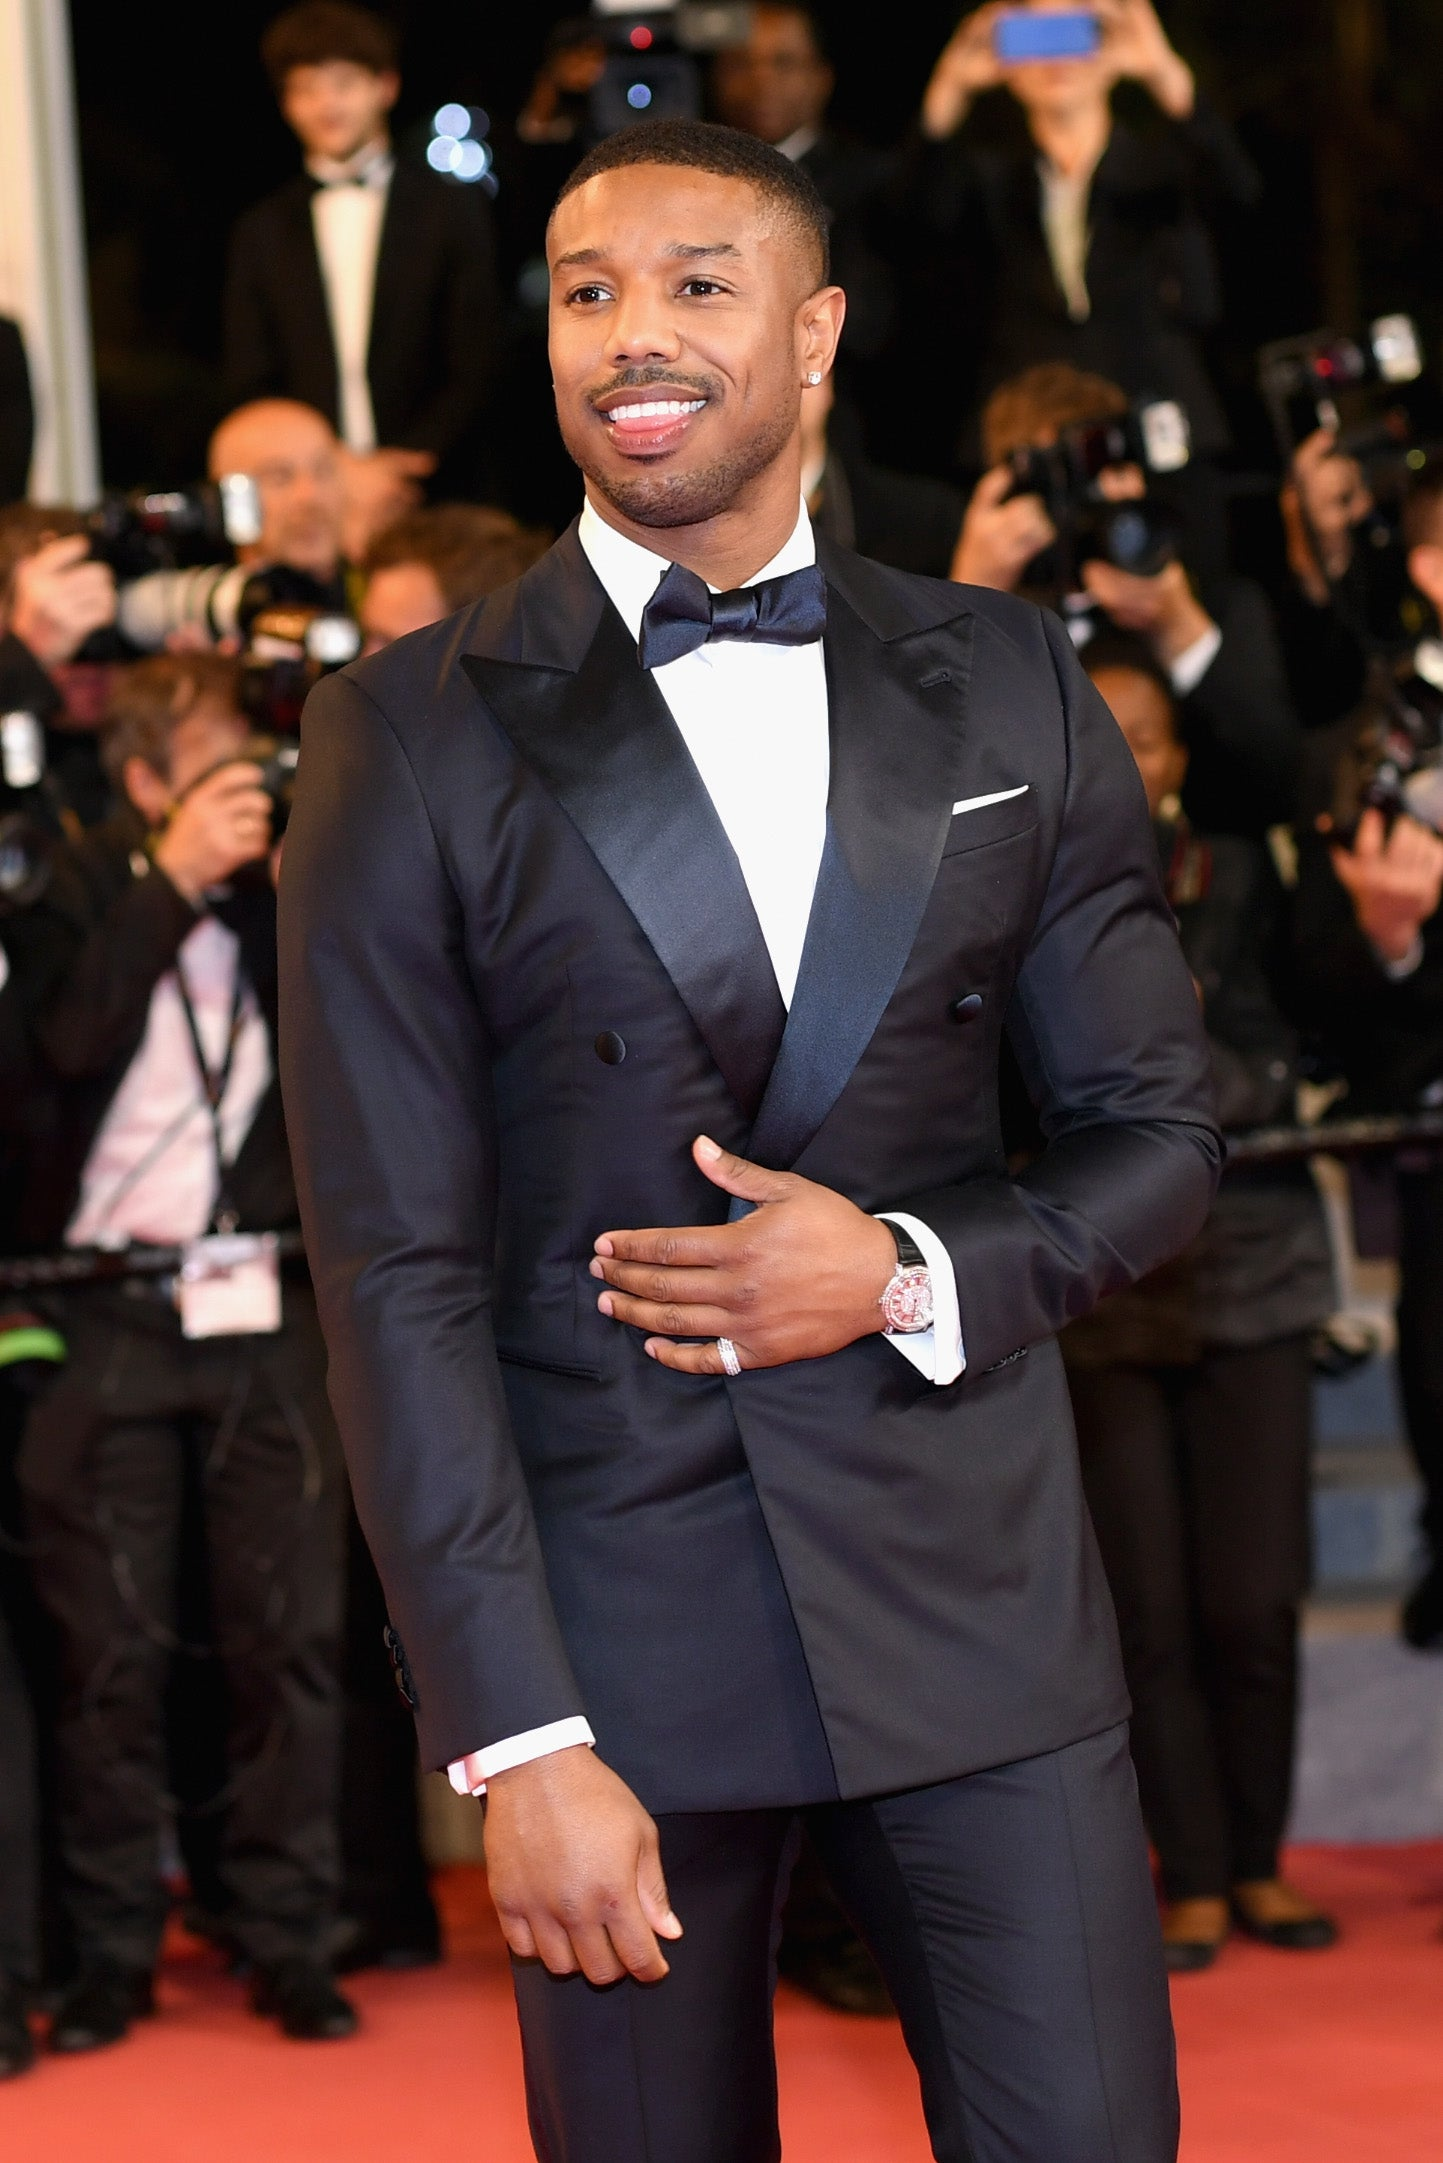 Michael B. Jordan Says Rumors That He Doesn't Have Love For Black Women 'Couldn't Be Further From The Truth'